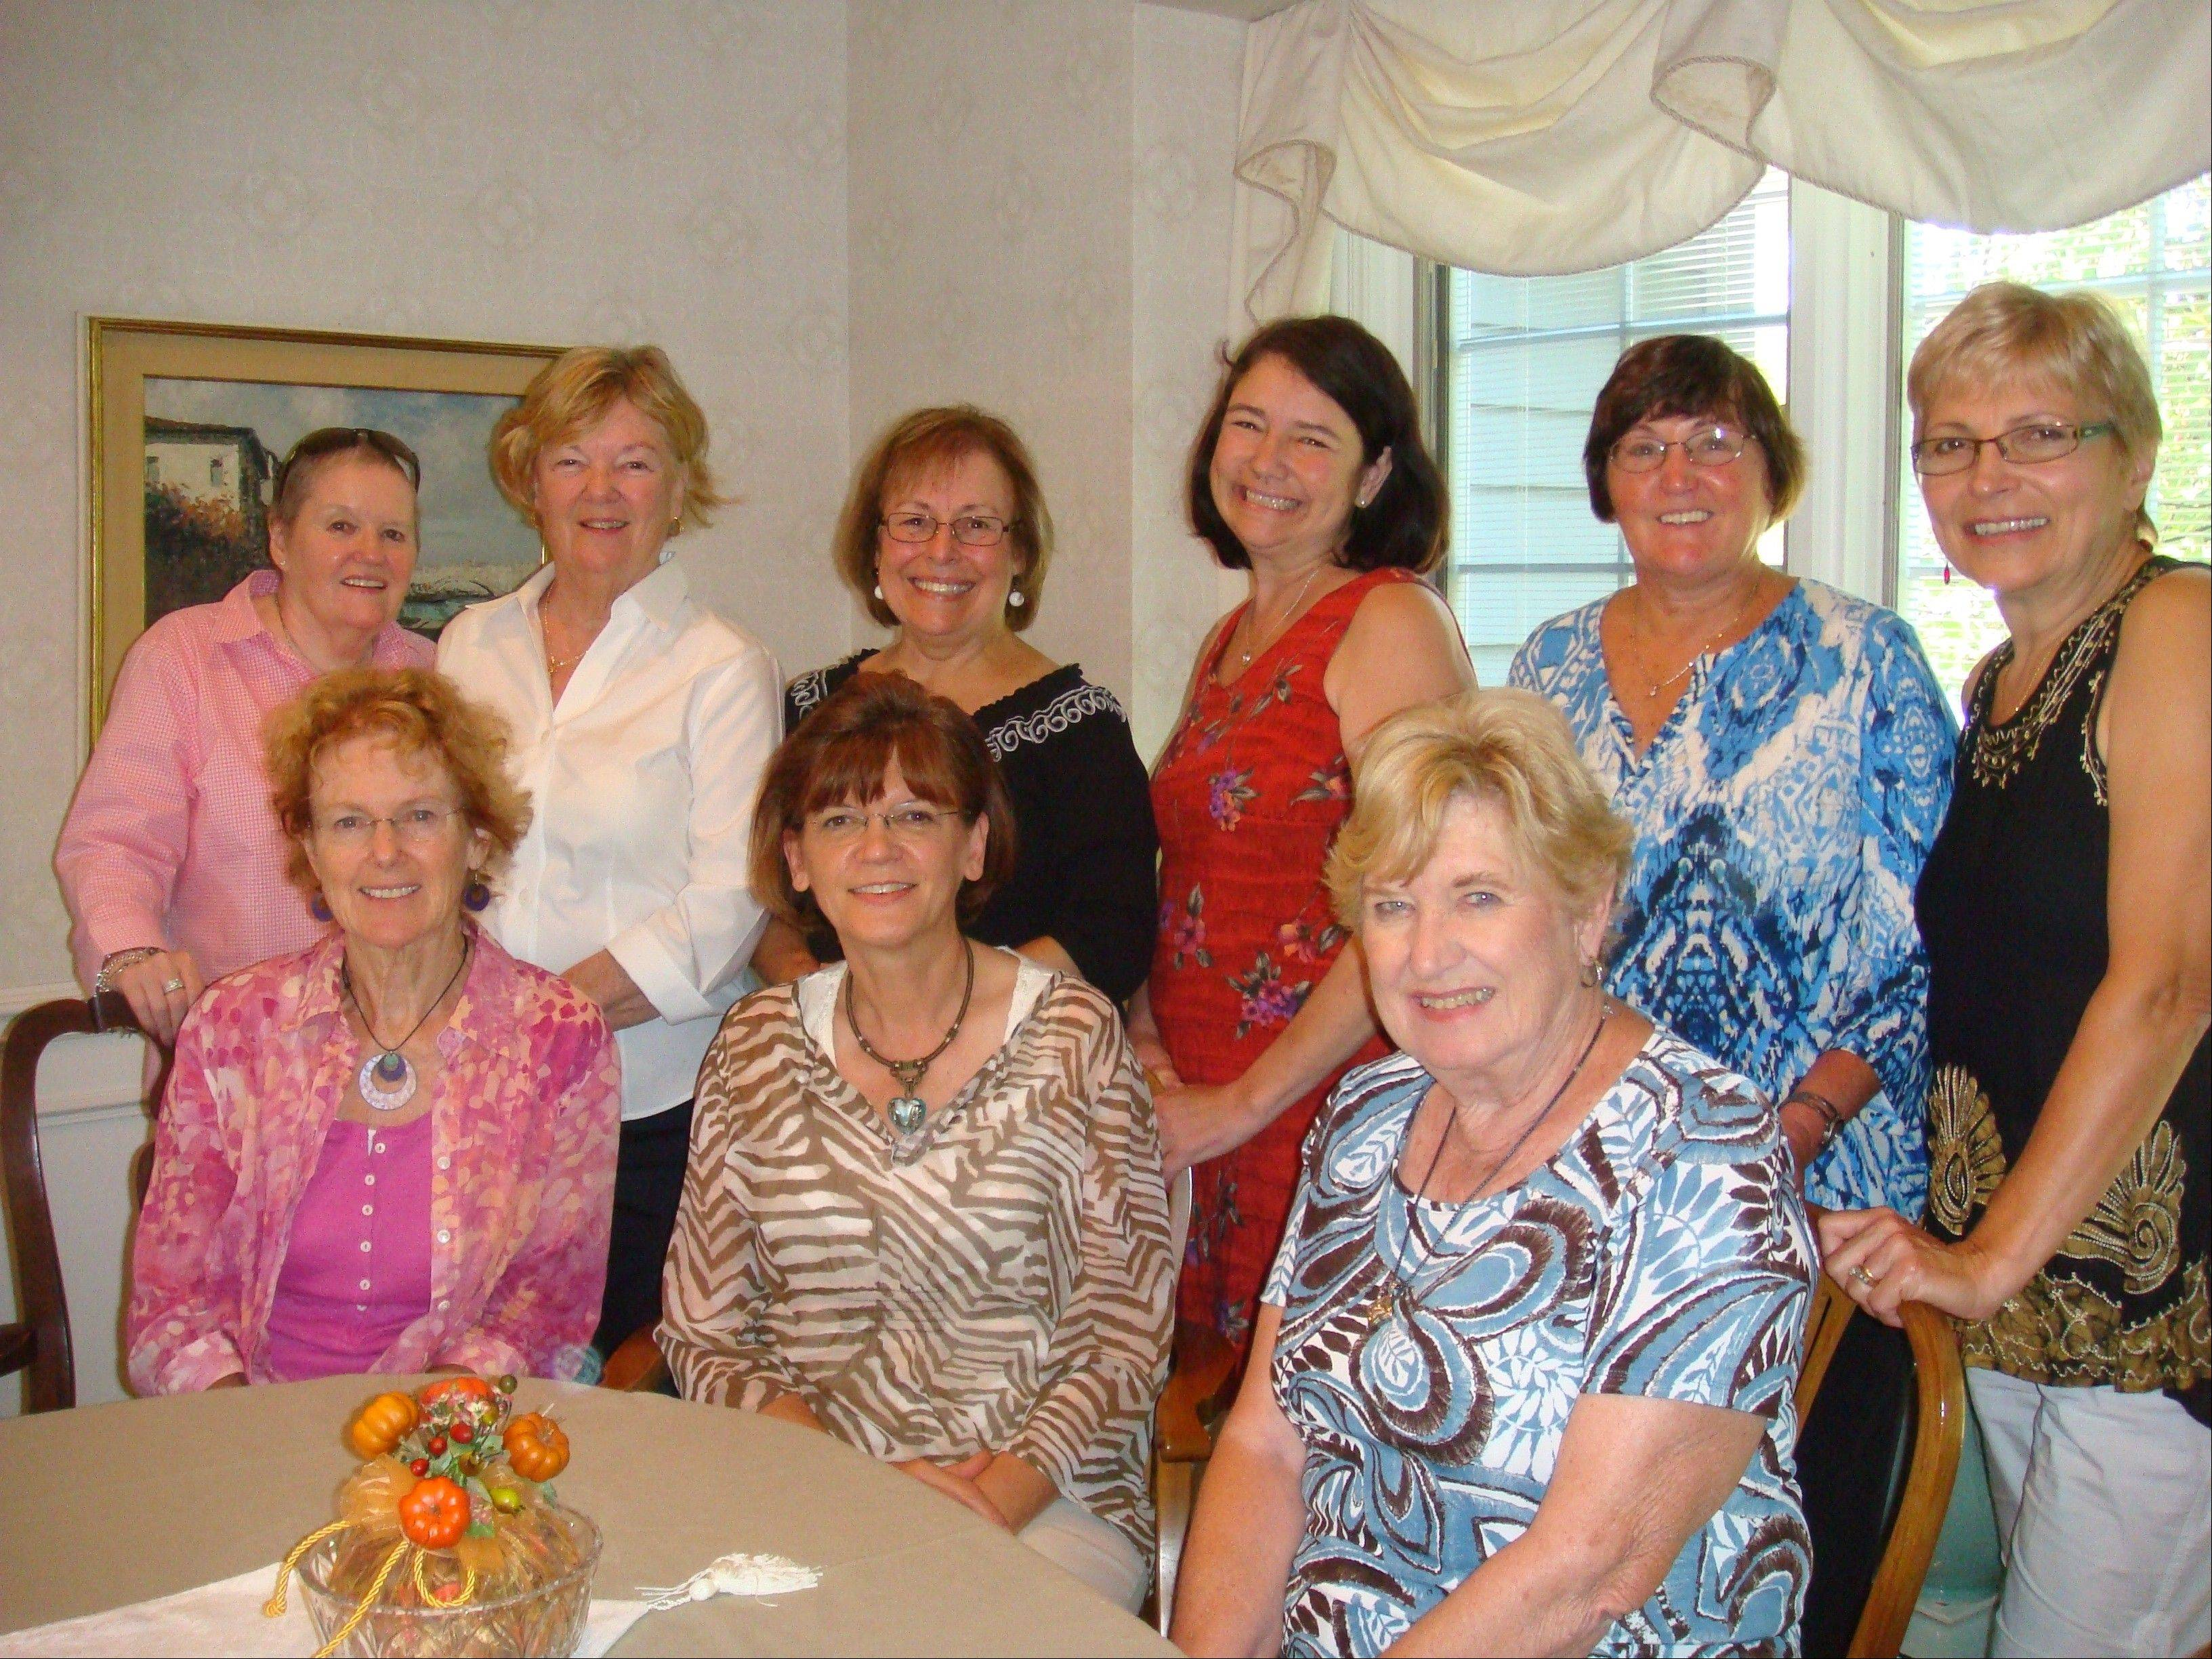 Members of the Four Seasons Garden Club at the October meeting, from left, are: Standing: Patricia Toole, Lenore Lawrence, Donnaruth Schaul, Cheryl Trzupek, Carolyn Roussel and Alena Gust; seated: Judy Palmer, Gail Bachmann and Nancy Marshall.